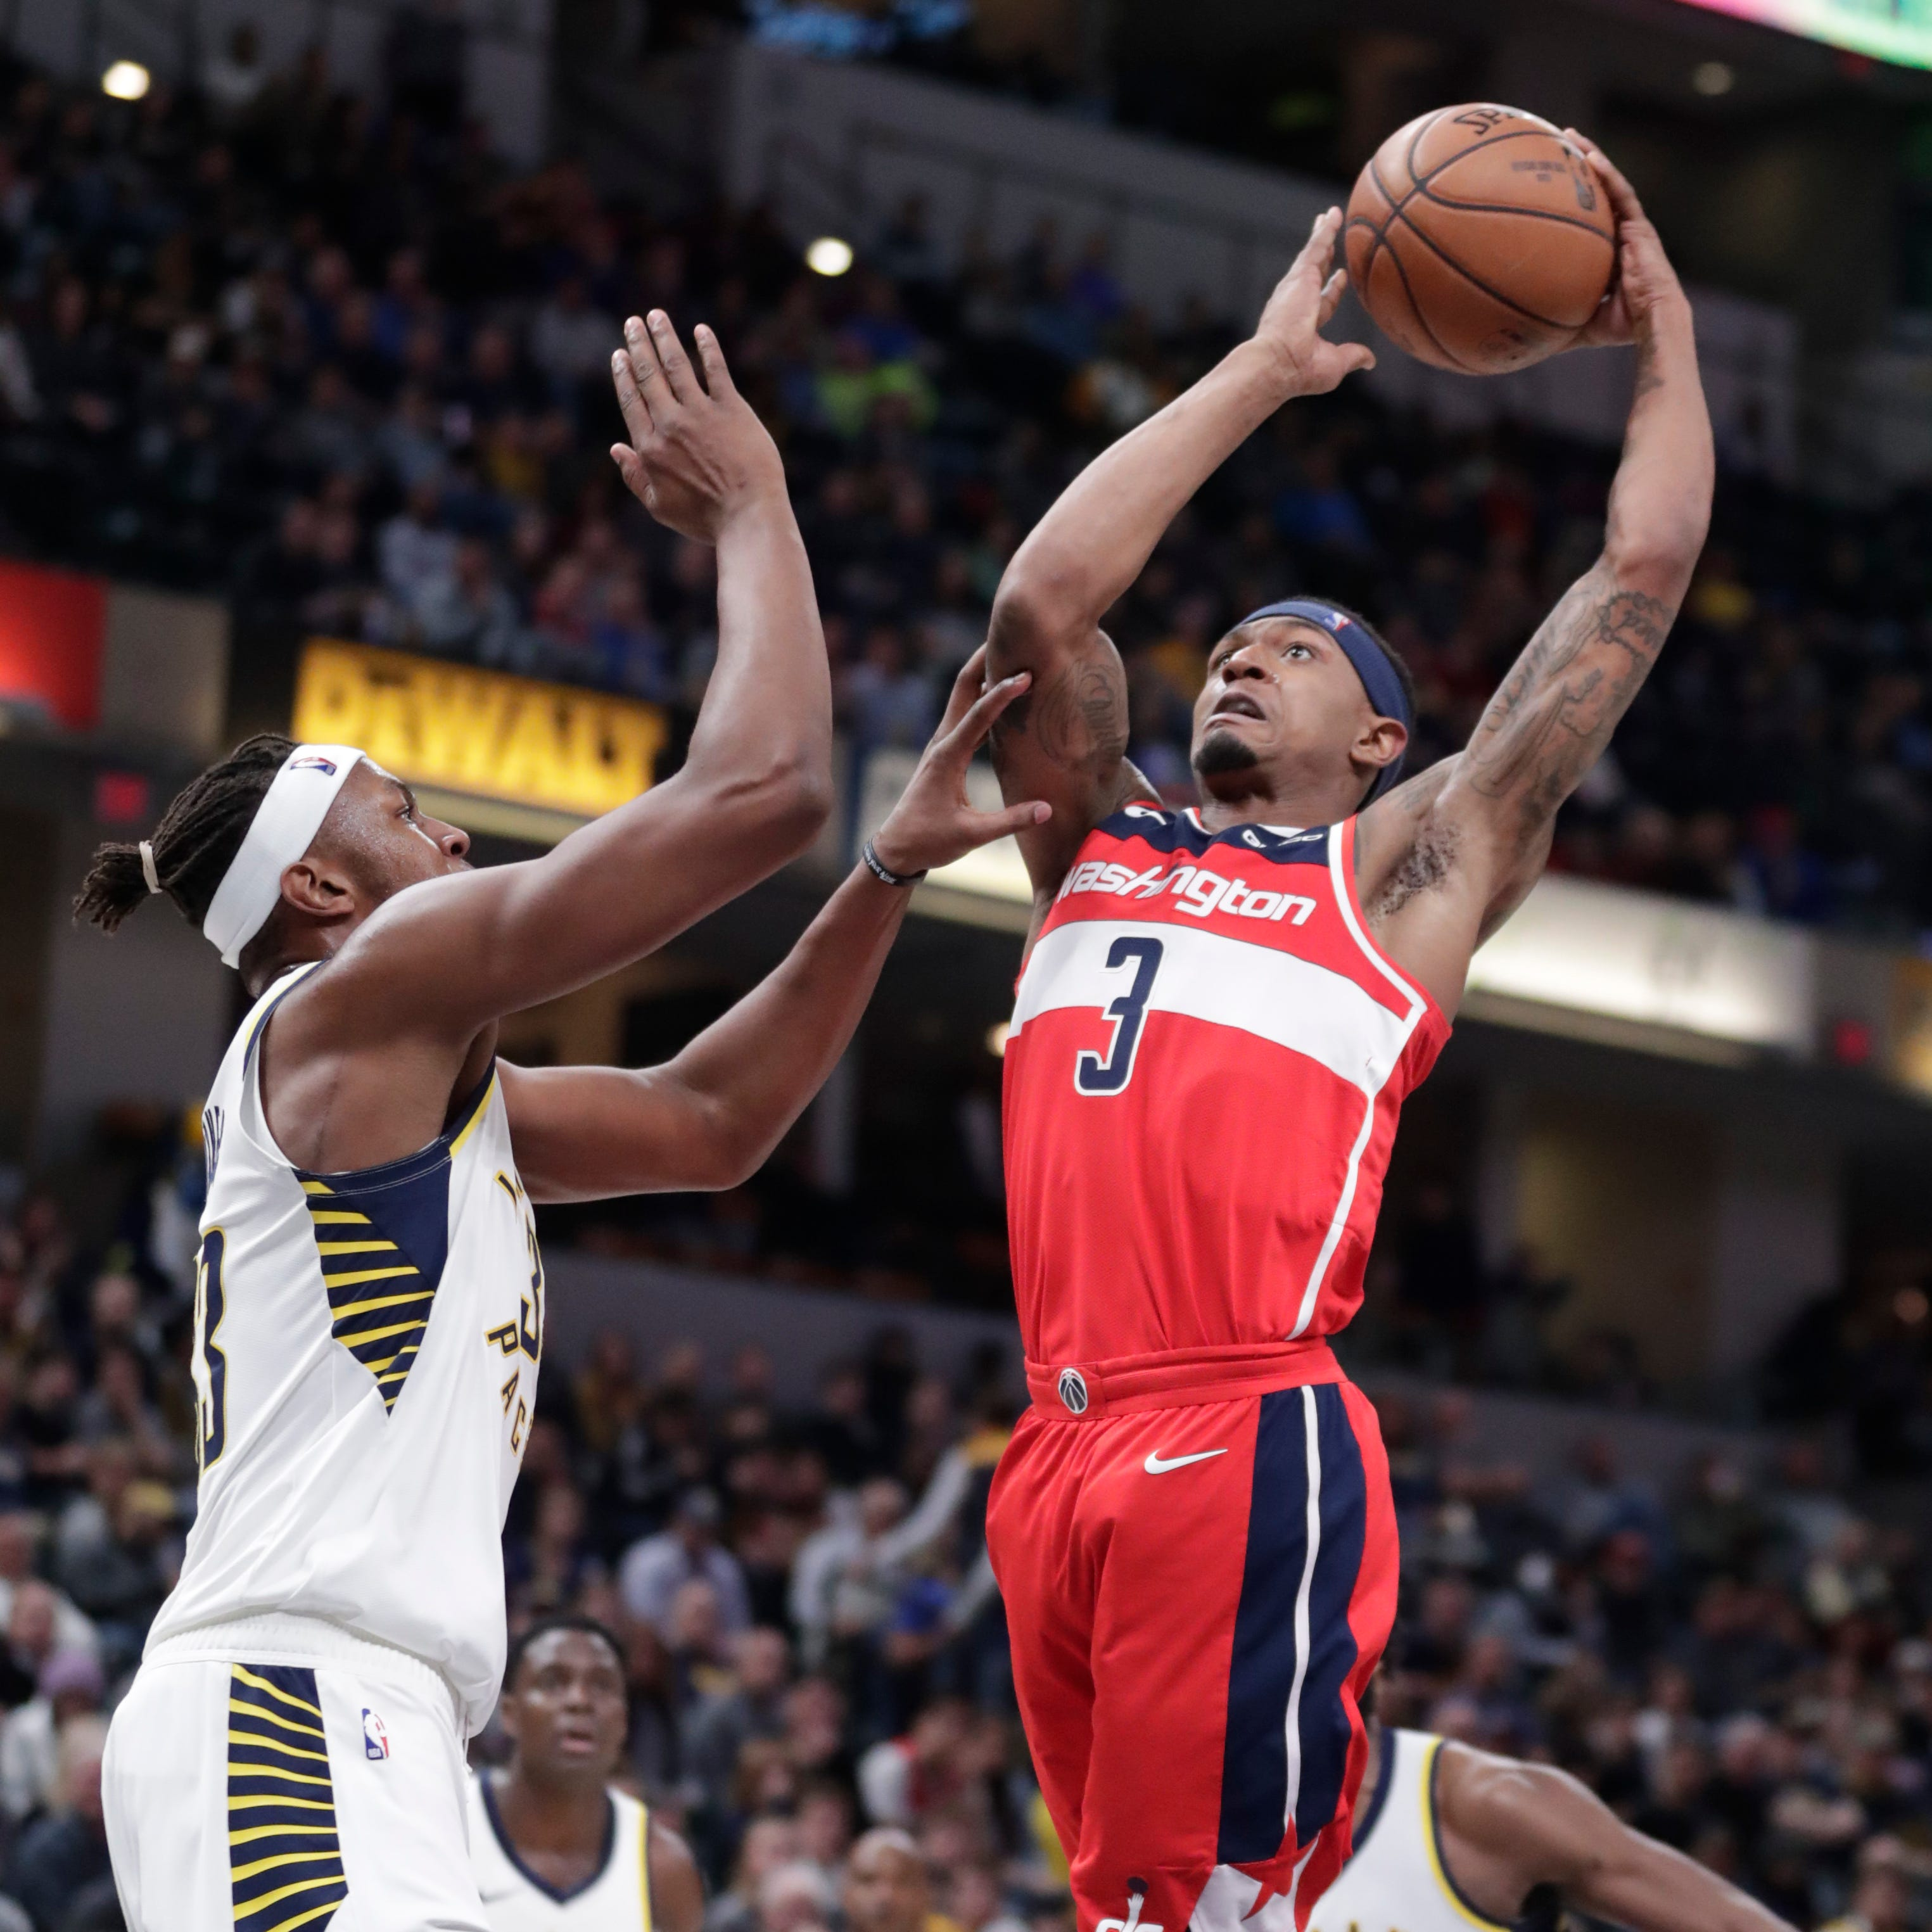 Myles Turner swats Wizards' hopes in Pacers' 4th straight victory